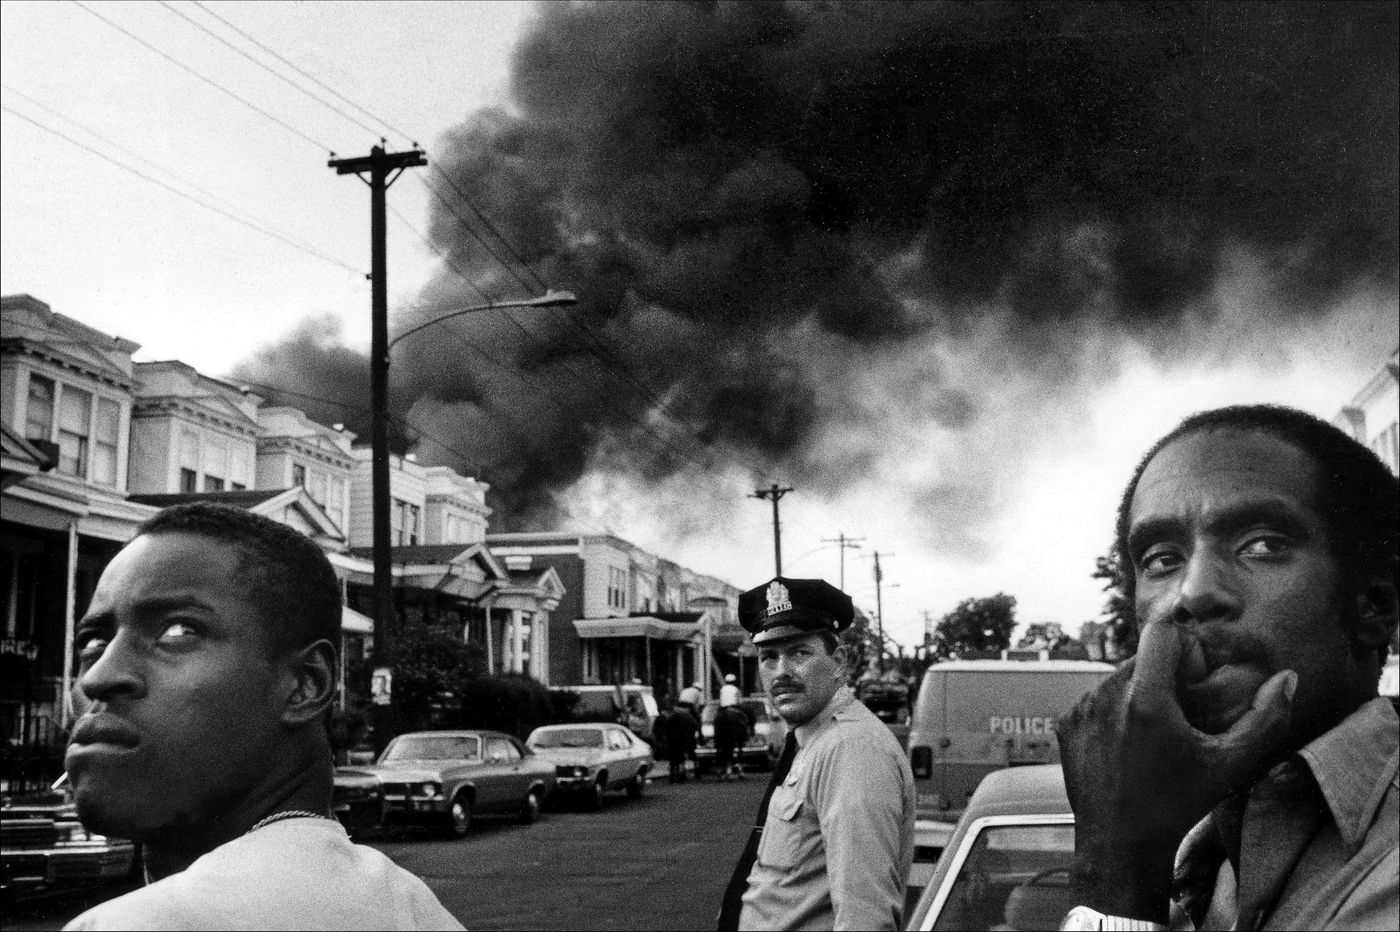 Philly City Council has formally apologized for the deadly 1985 MOVE bombing